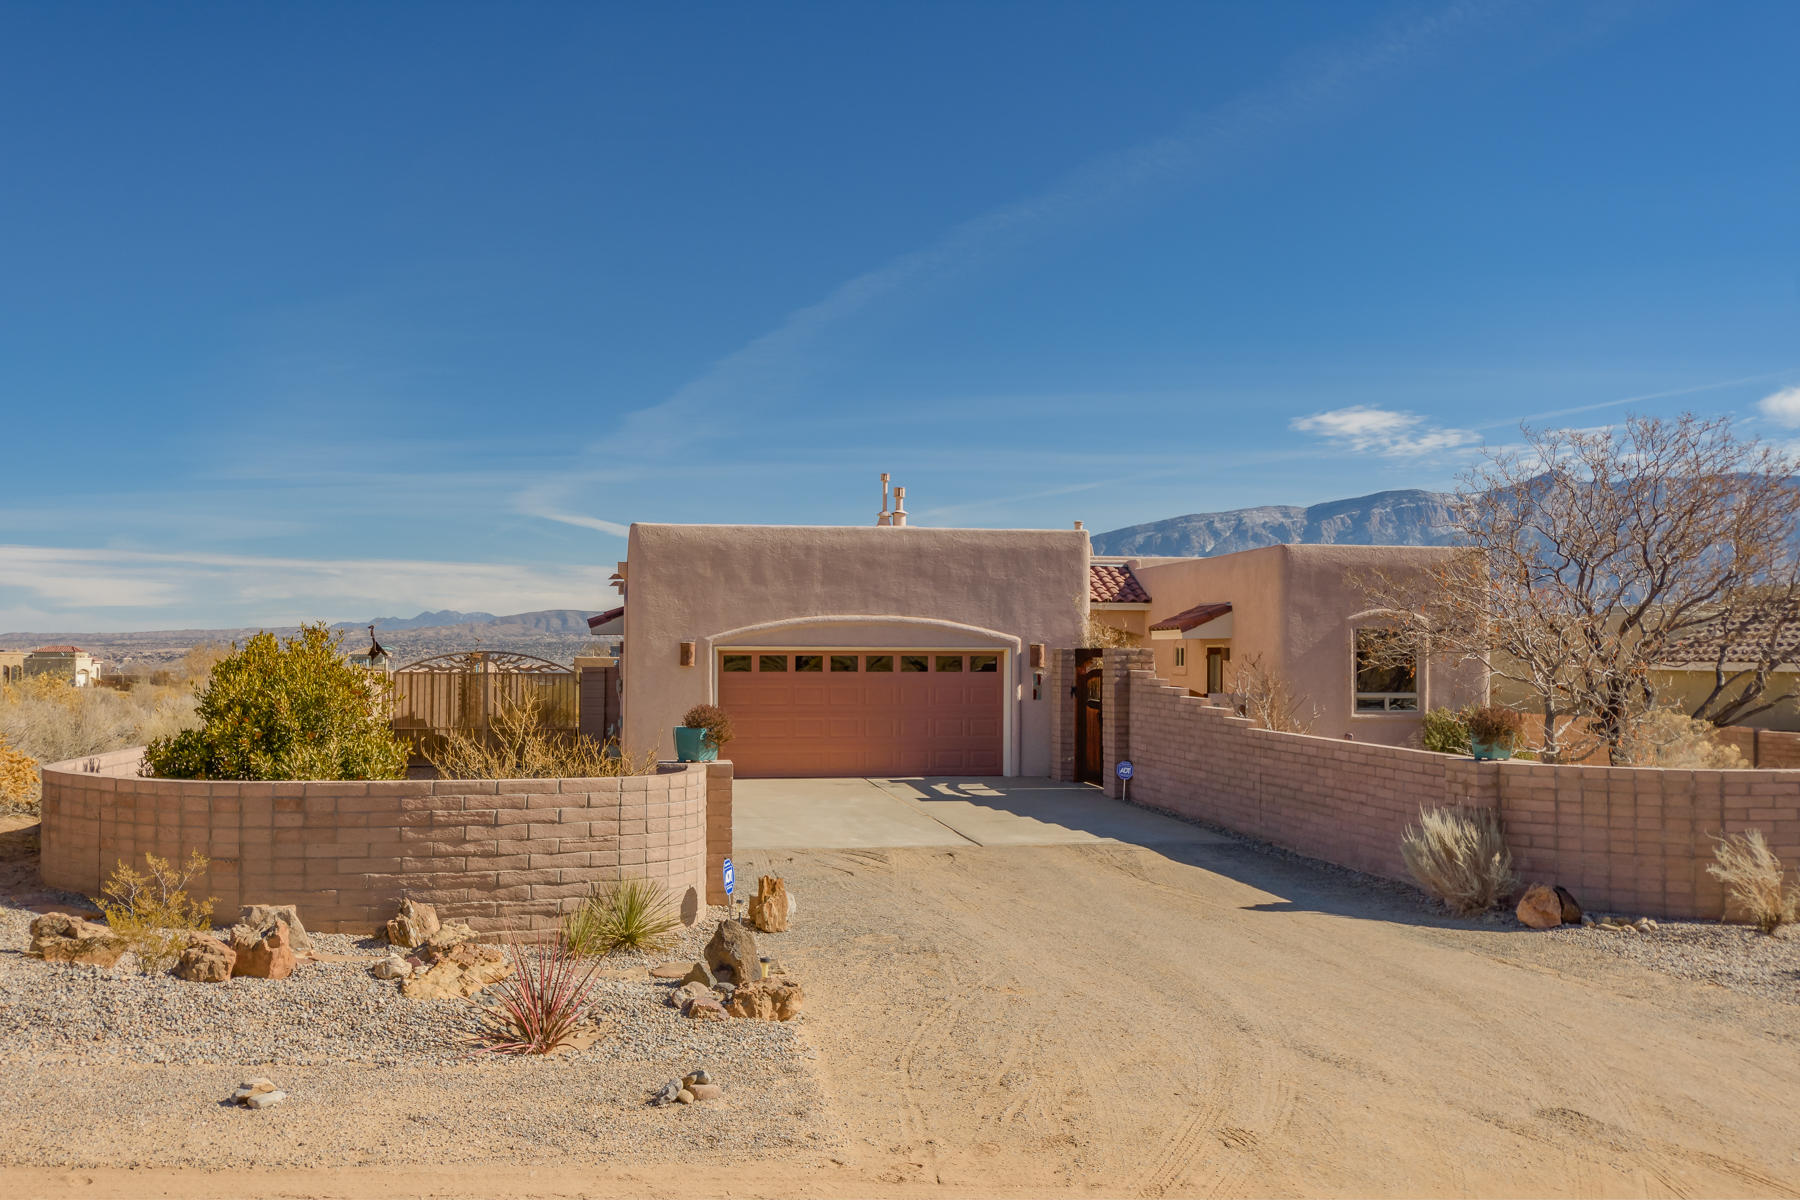 Custom Hinkle Home w/ Million $$ views  from SF to Los Lunas.  Main home is  2000 sf, 3 bd/2 ba. The attached casita adds 300 sqft: Guest Qtrs or office w/ closet & 3/4 bath. Home has been beautifully updated w/ Quartz kitchen counters &  wood Floors.  Owners added kitchen bay window(with copper roof line) & replaced  DR windows & slider(Anderson brand) Gorgeous custom portal & xeriscaped backyard. Property perimeter is walled using slump stone brick for an adobe look. Kingsized Master suite & 2 guest rooms w/ wood floors. Nicely appointed w/ natural wood doors, nichos &  shutters throughout.  Front yard is enclosed in courtyard & there is side yard access to the north.  220 outlet/30amp for charging an RV too! So much to see &  appreciate!Make appt. to visit this spectacular home today!